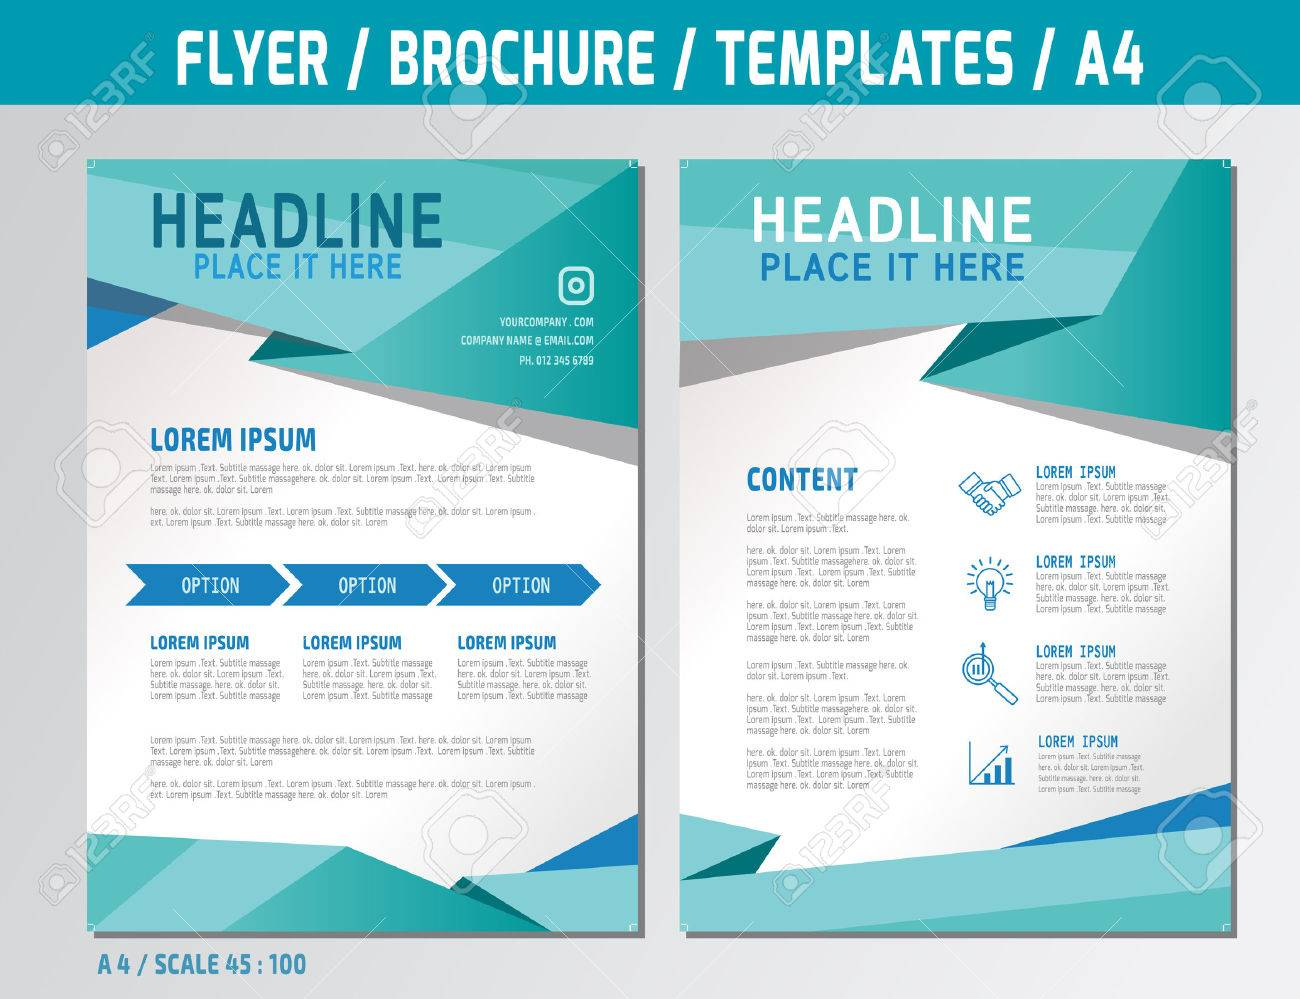 flyer design template in a4 size medical concept illustration